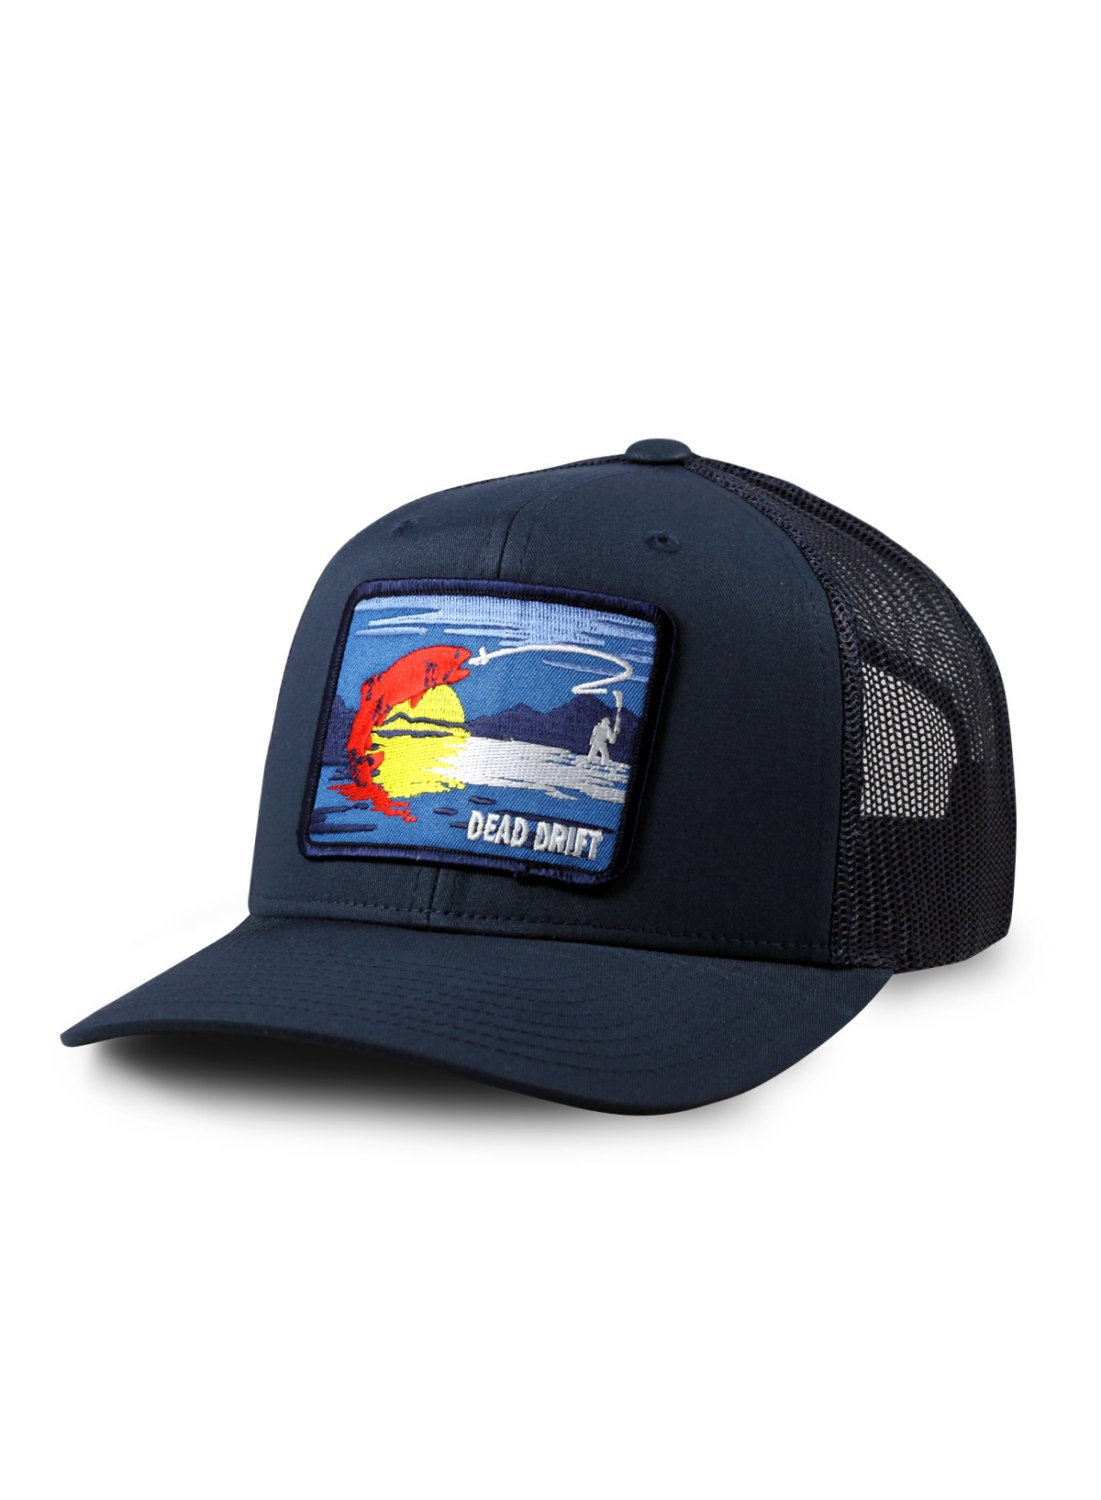 Fly fishing hat colorado flag snap back mesh trucker navy by for Fishing trucker hats